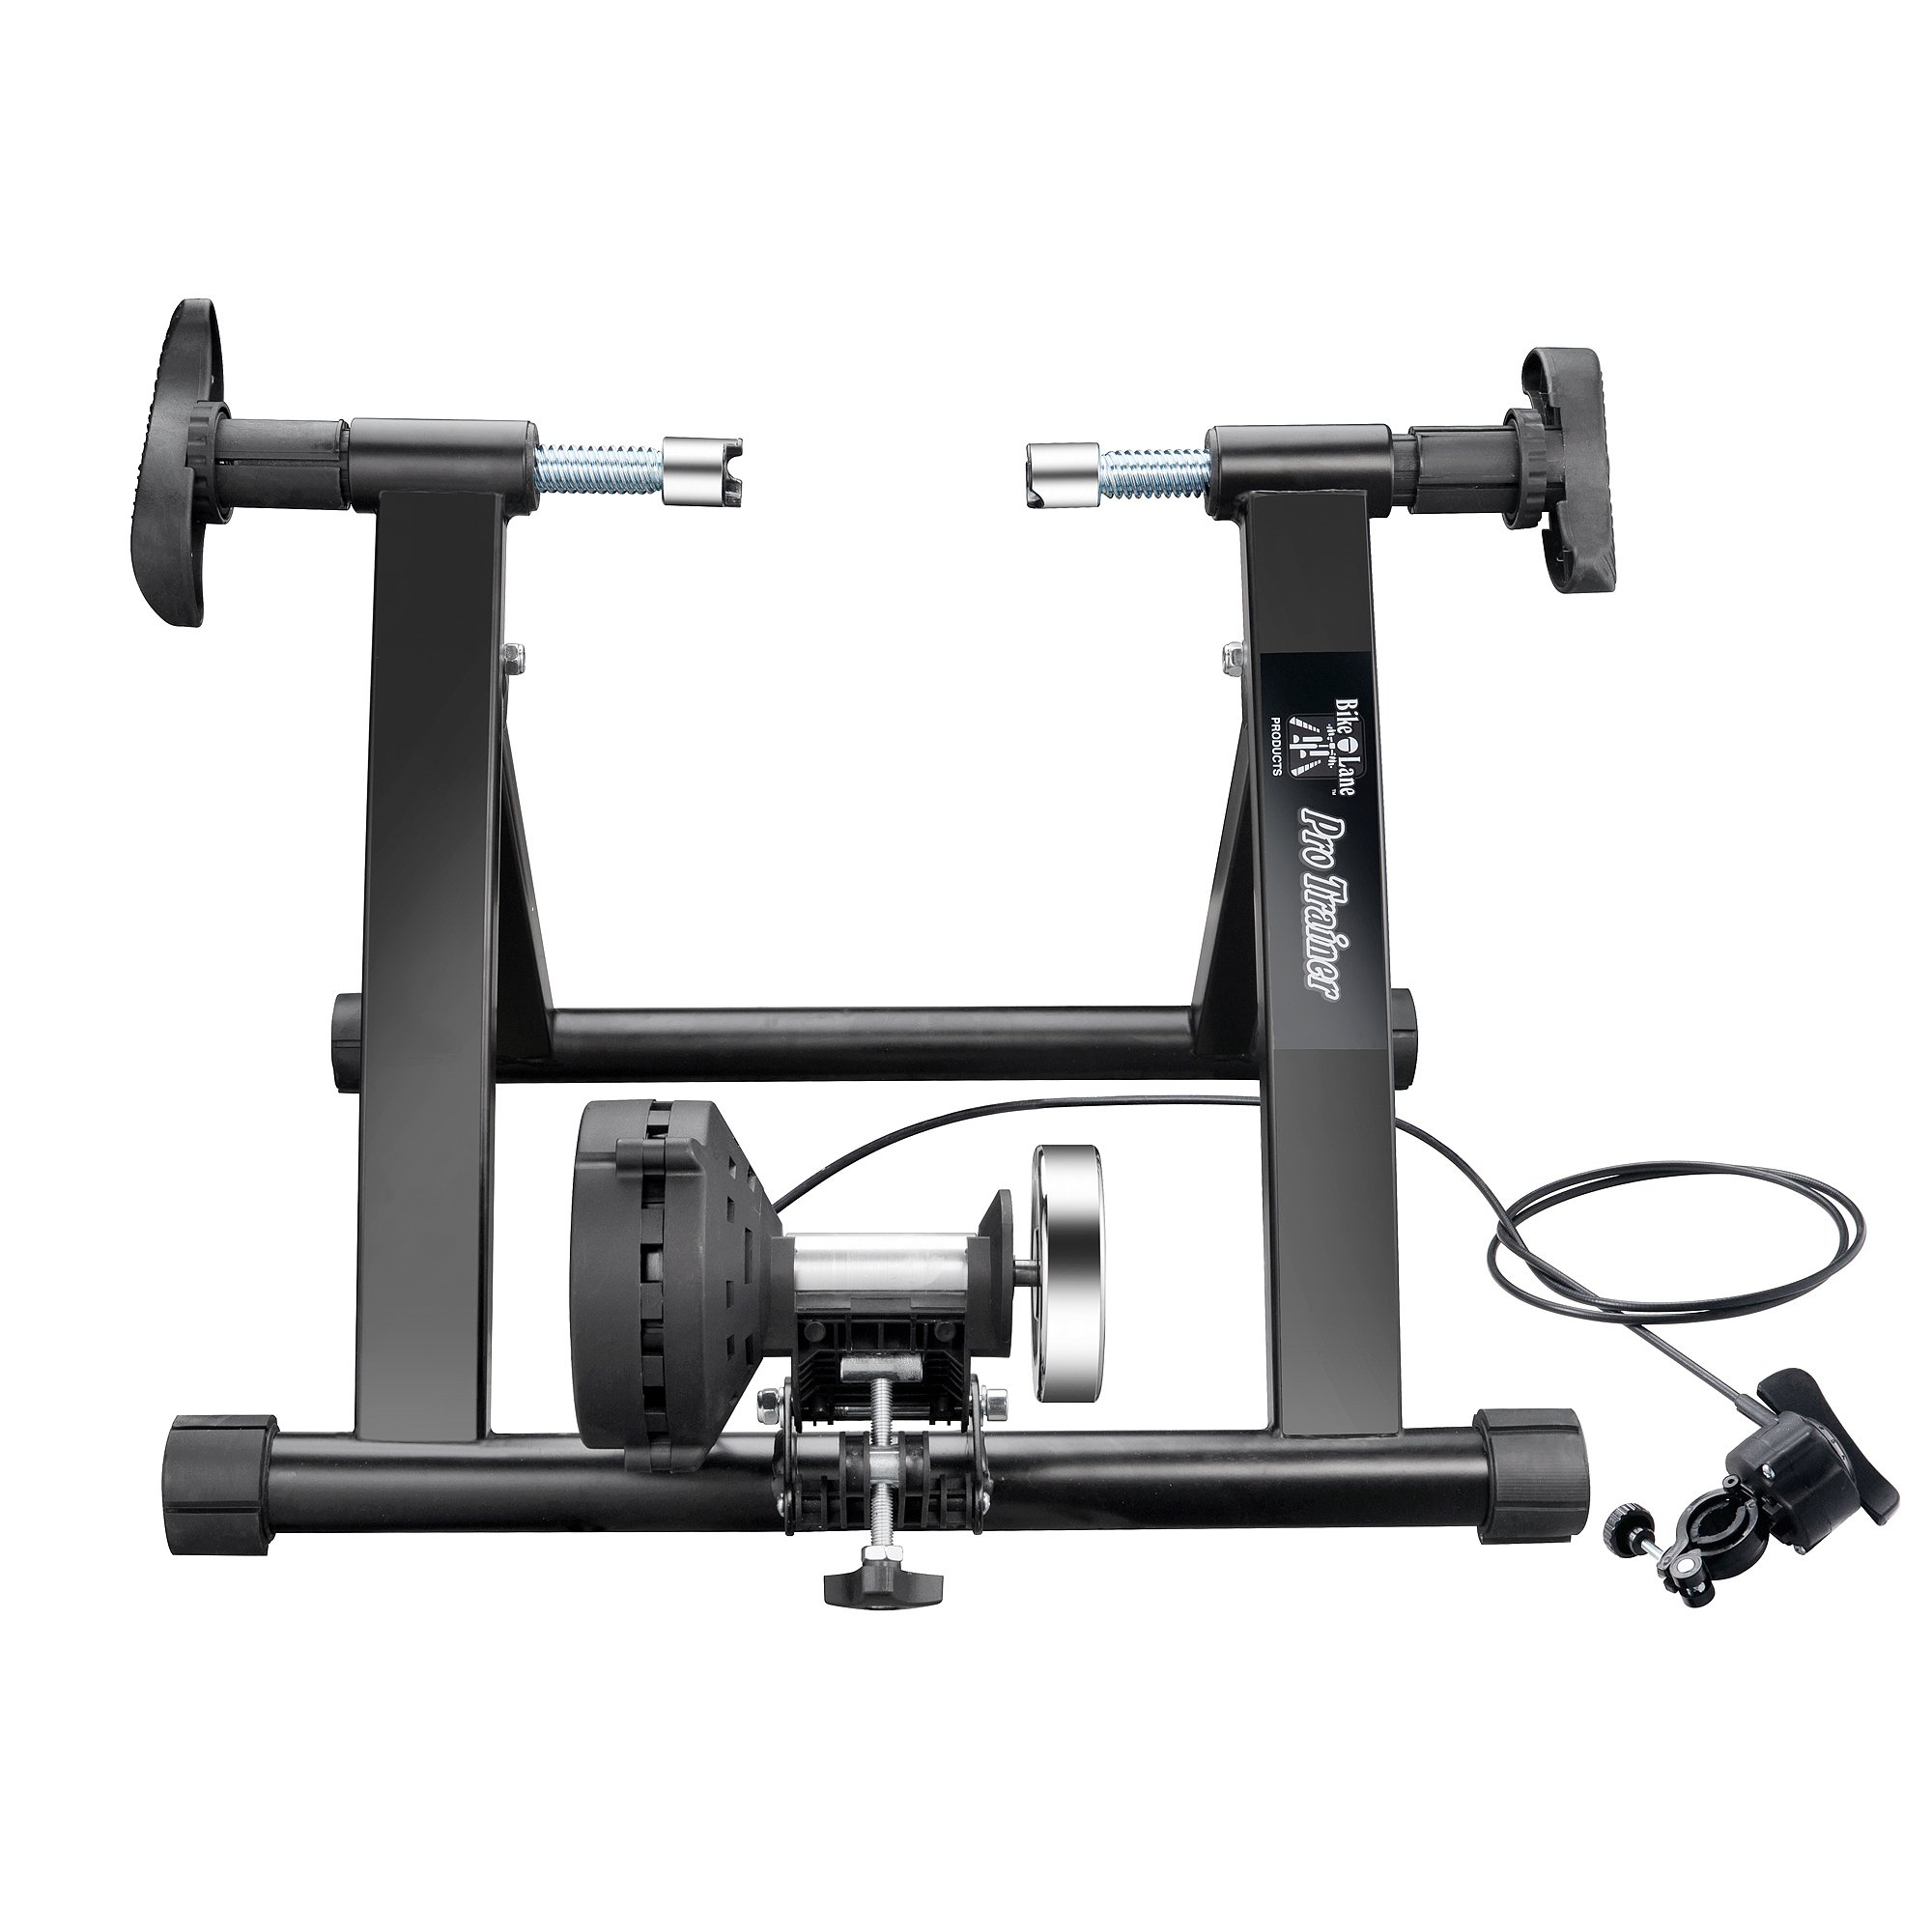 Bike Lane Pro Trainer Bicycle Indoor Trainer Exercise Machine Ride All Year by Bike Lane (Image #6)